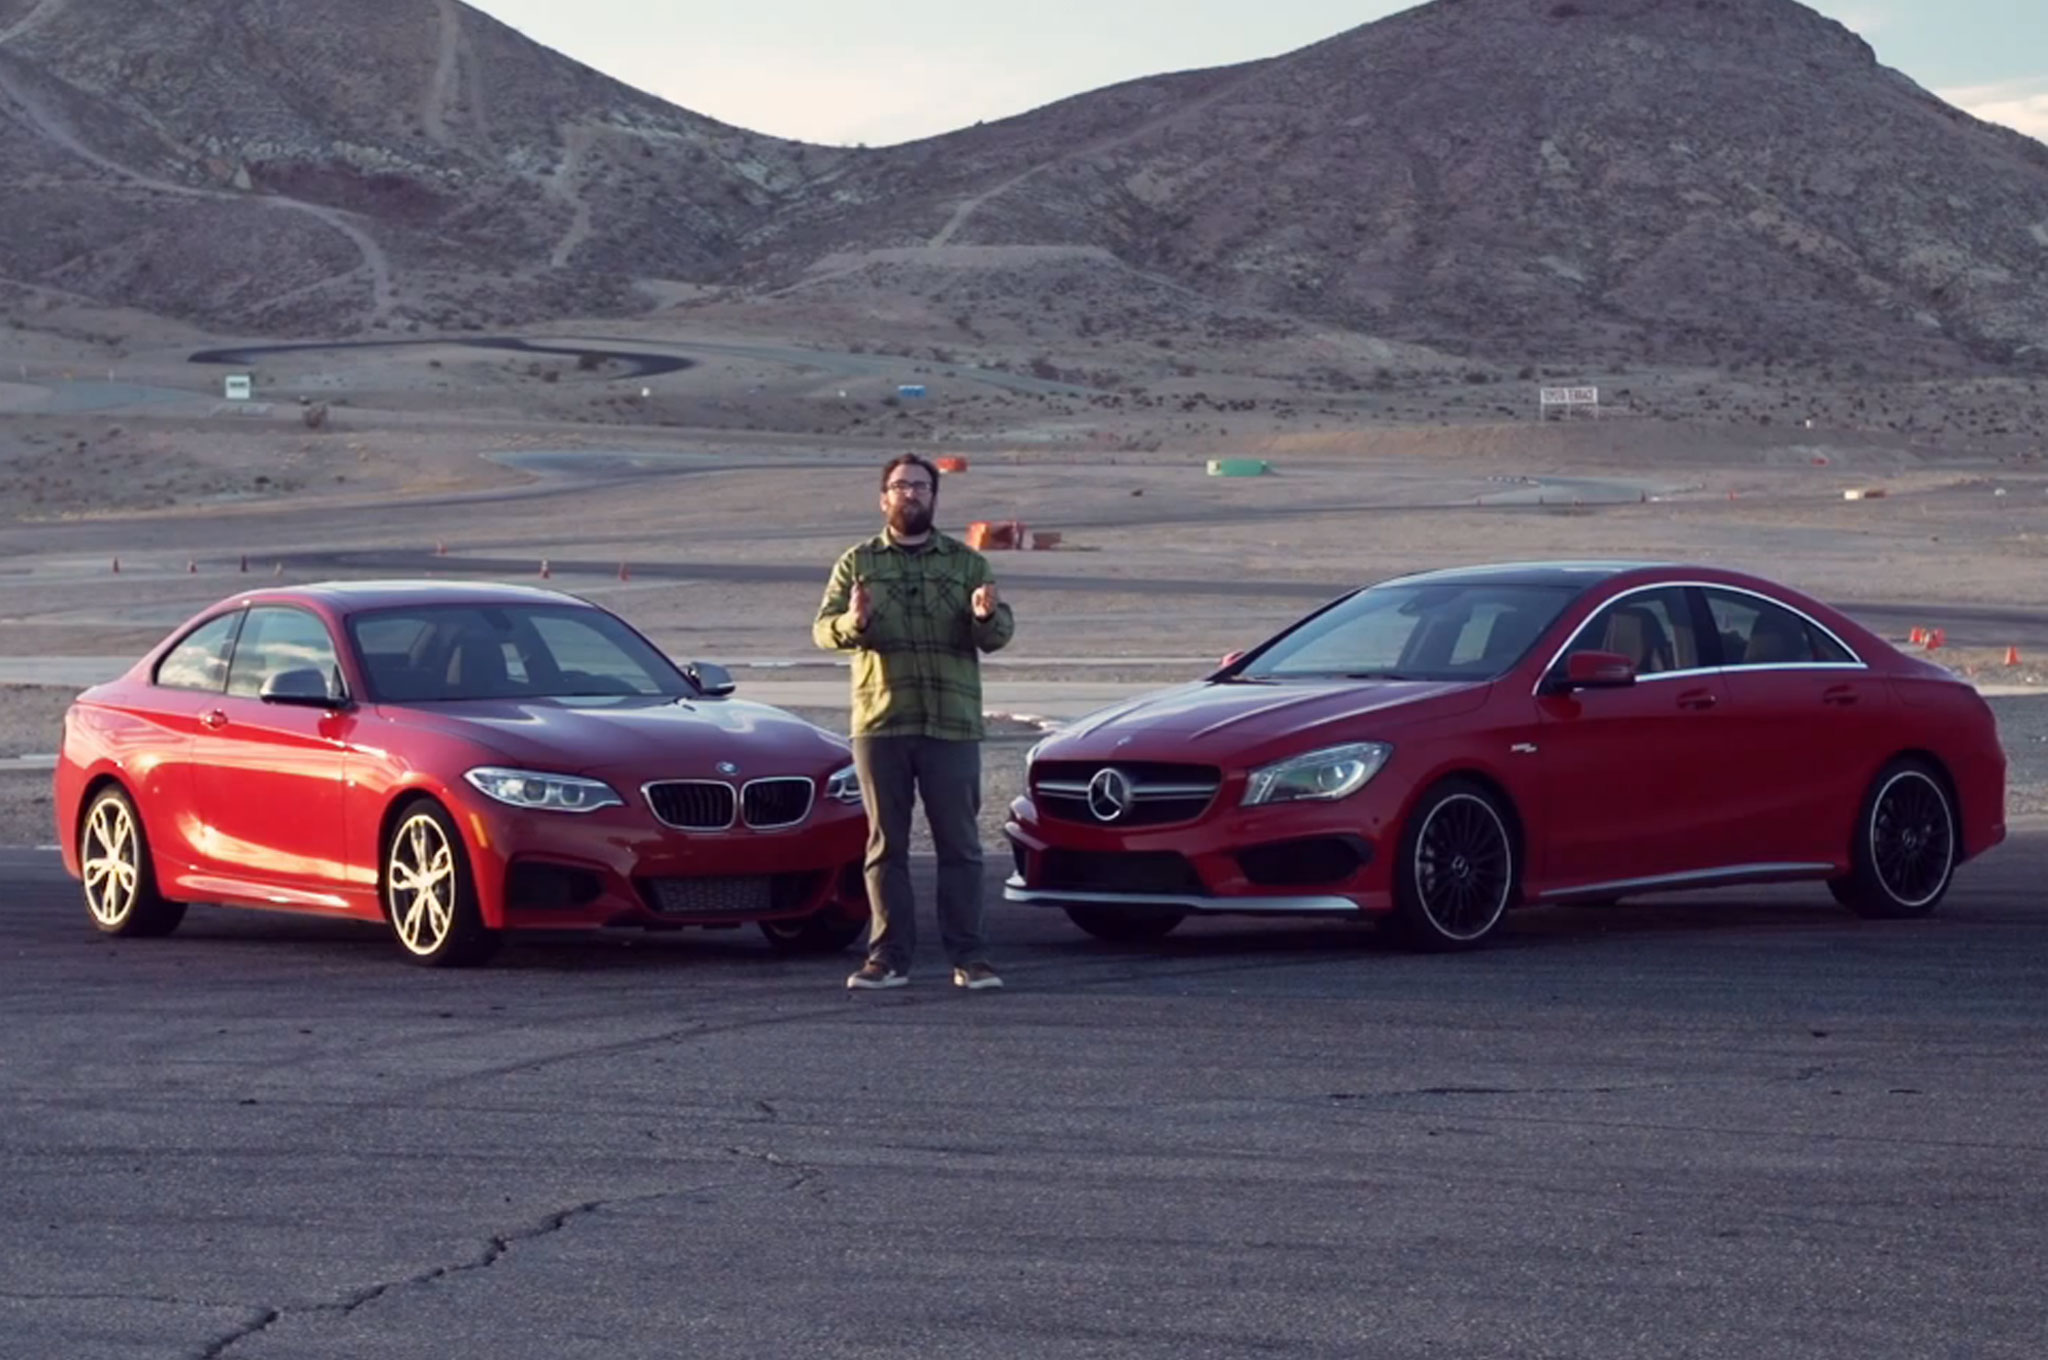 2014 BMW M235i, Mercedes-Benz CLA45 AMG Shoot Out (W/Video)